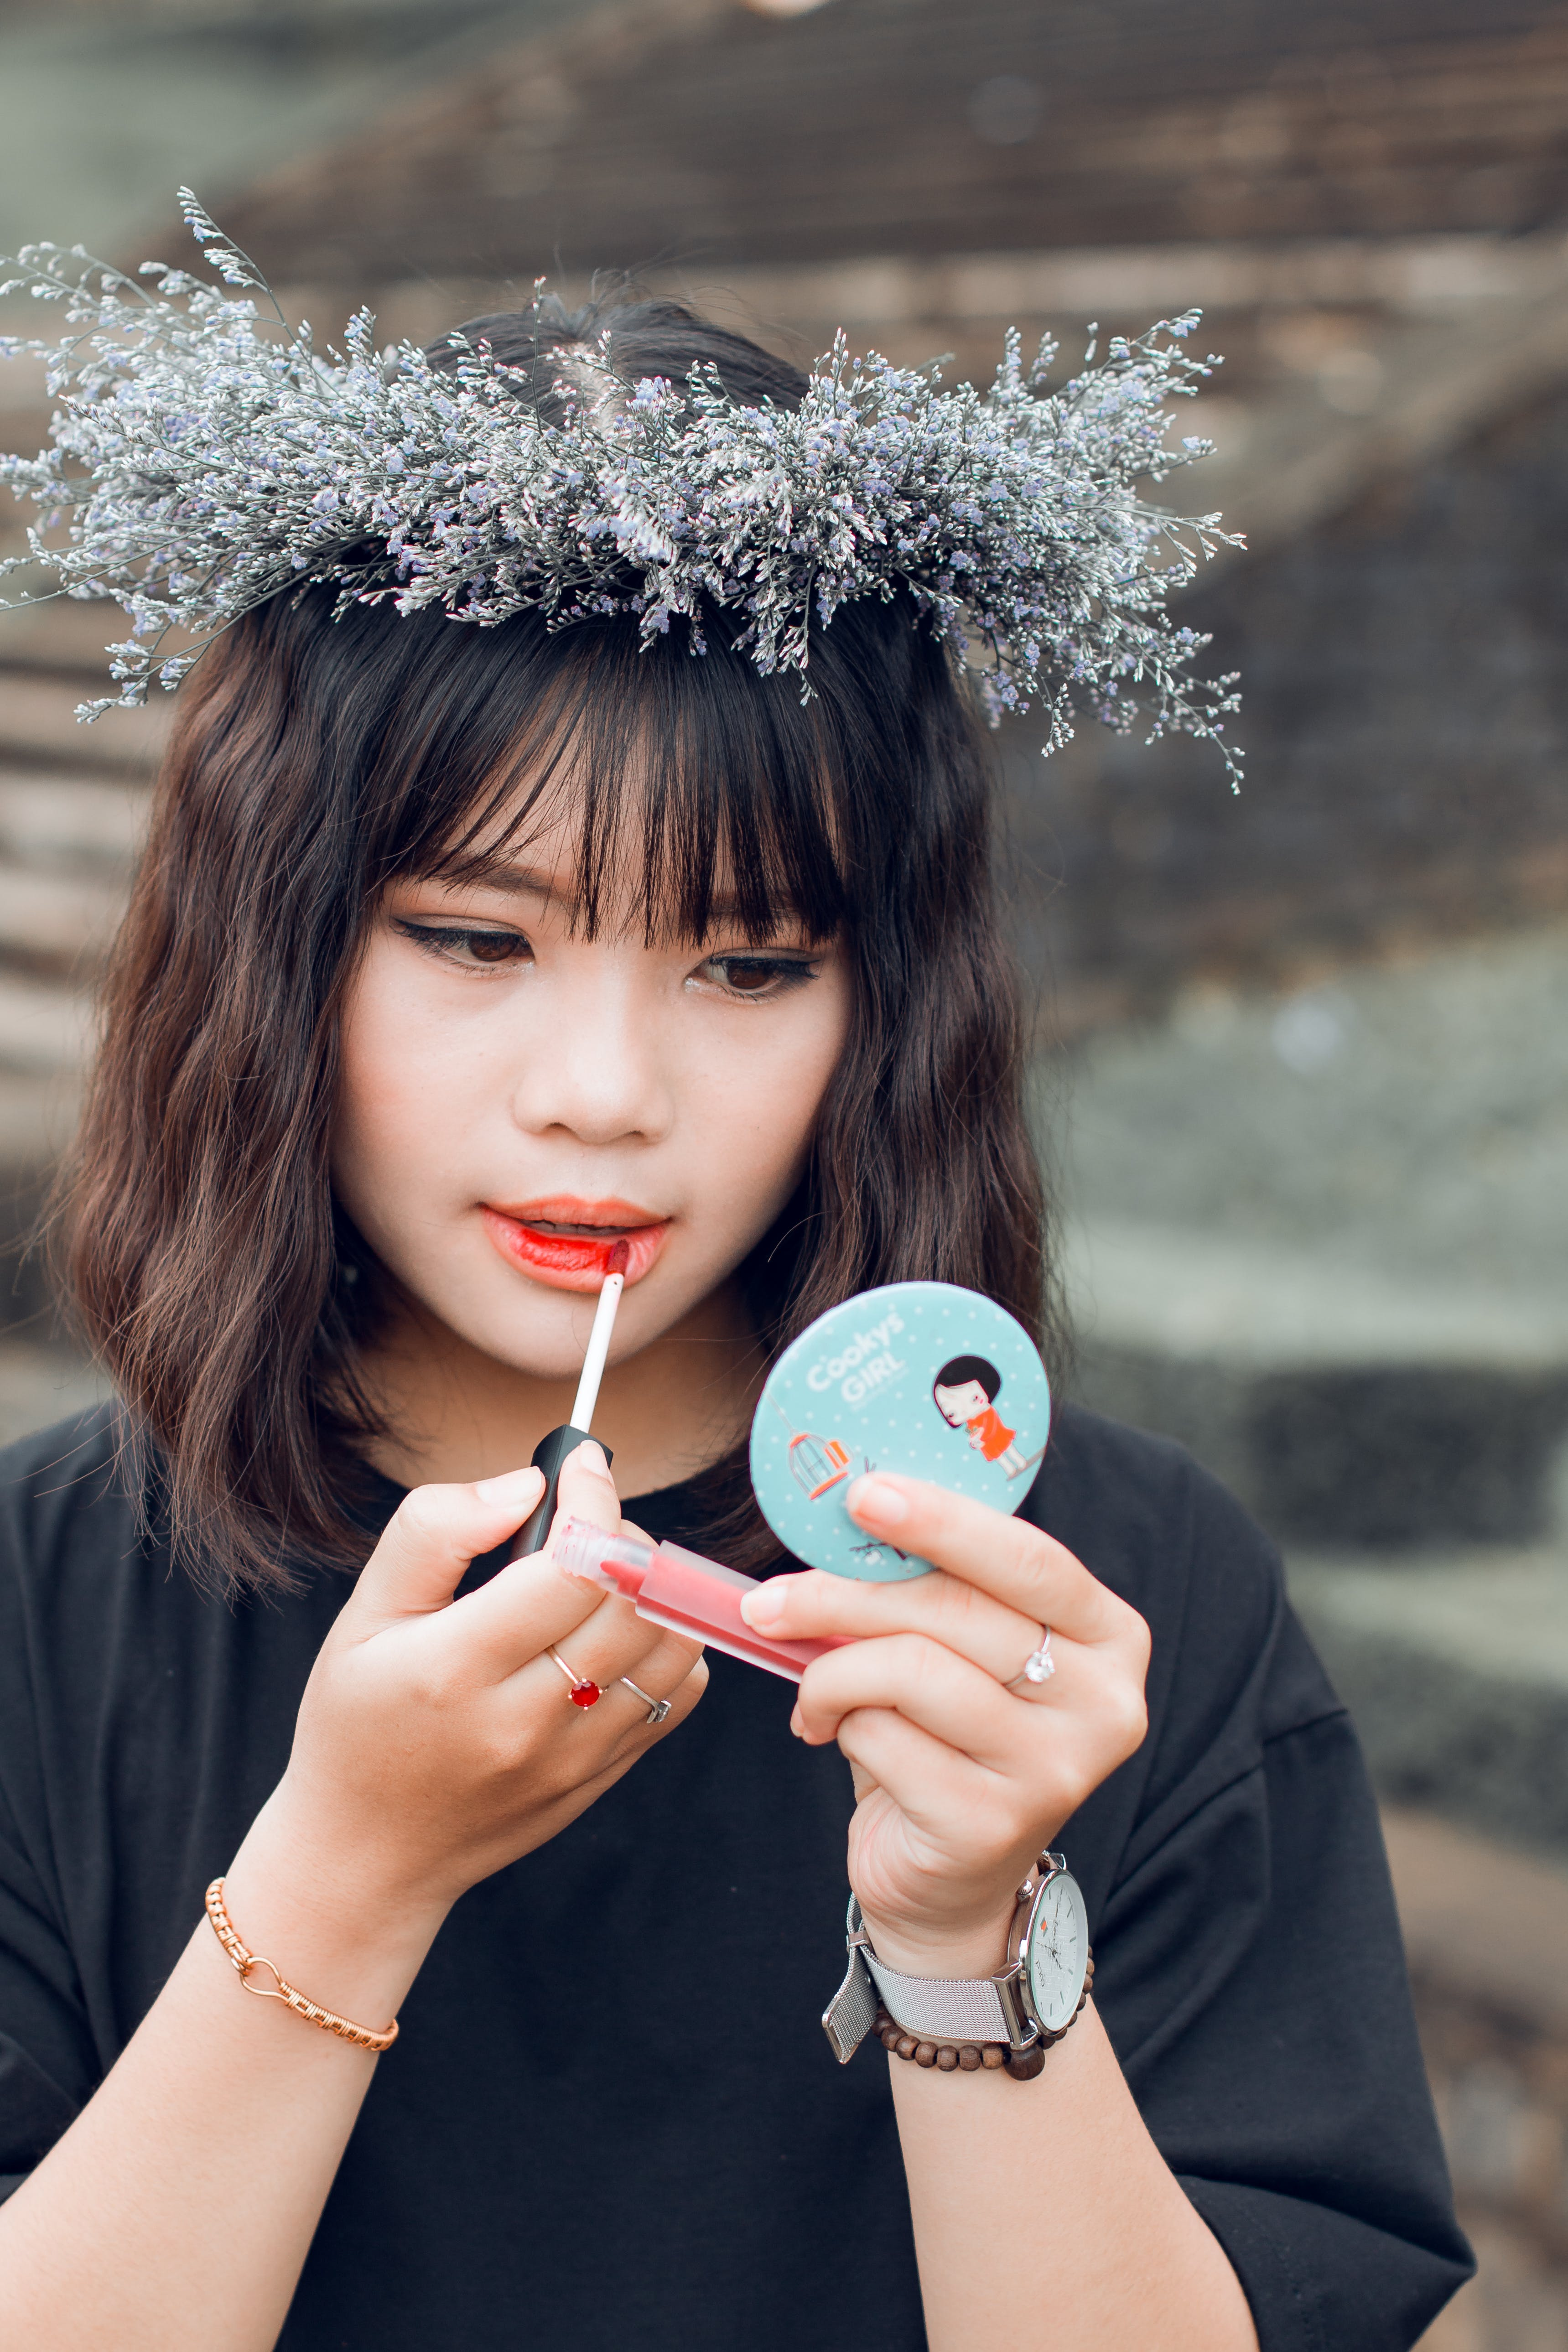 Woman Putting Lip Tint on Her Lips